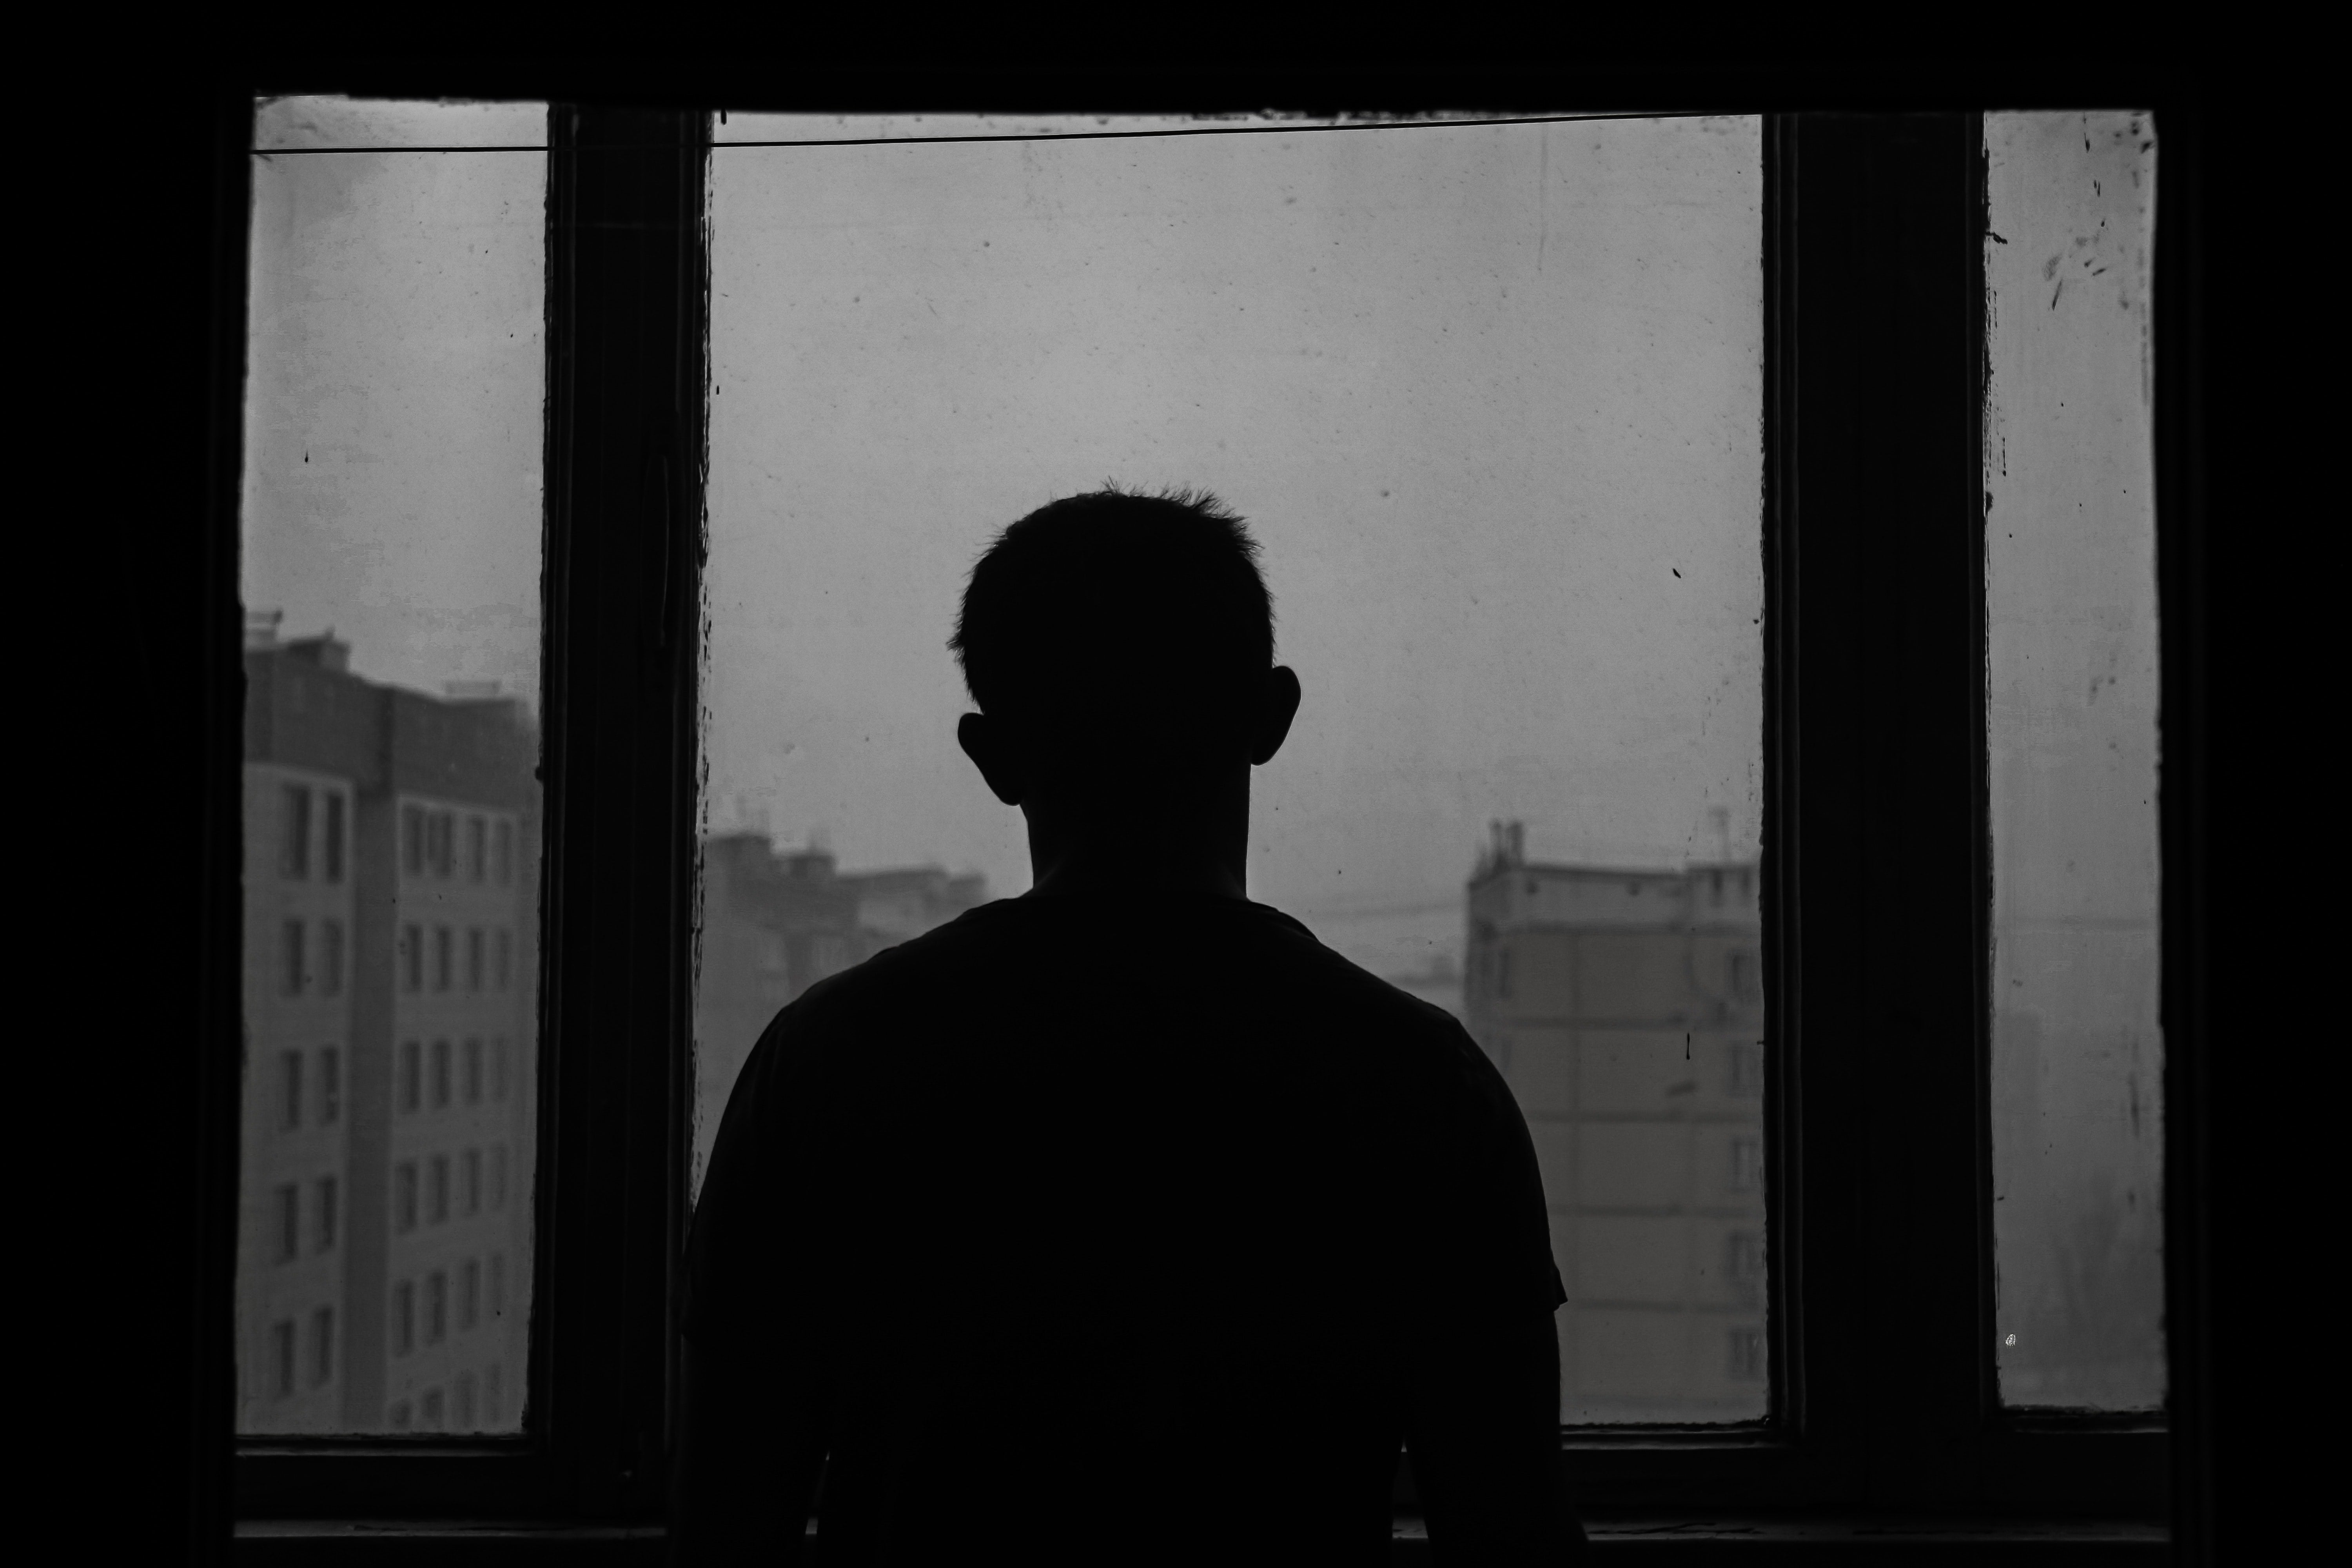 A man's silhouette looking out of a window